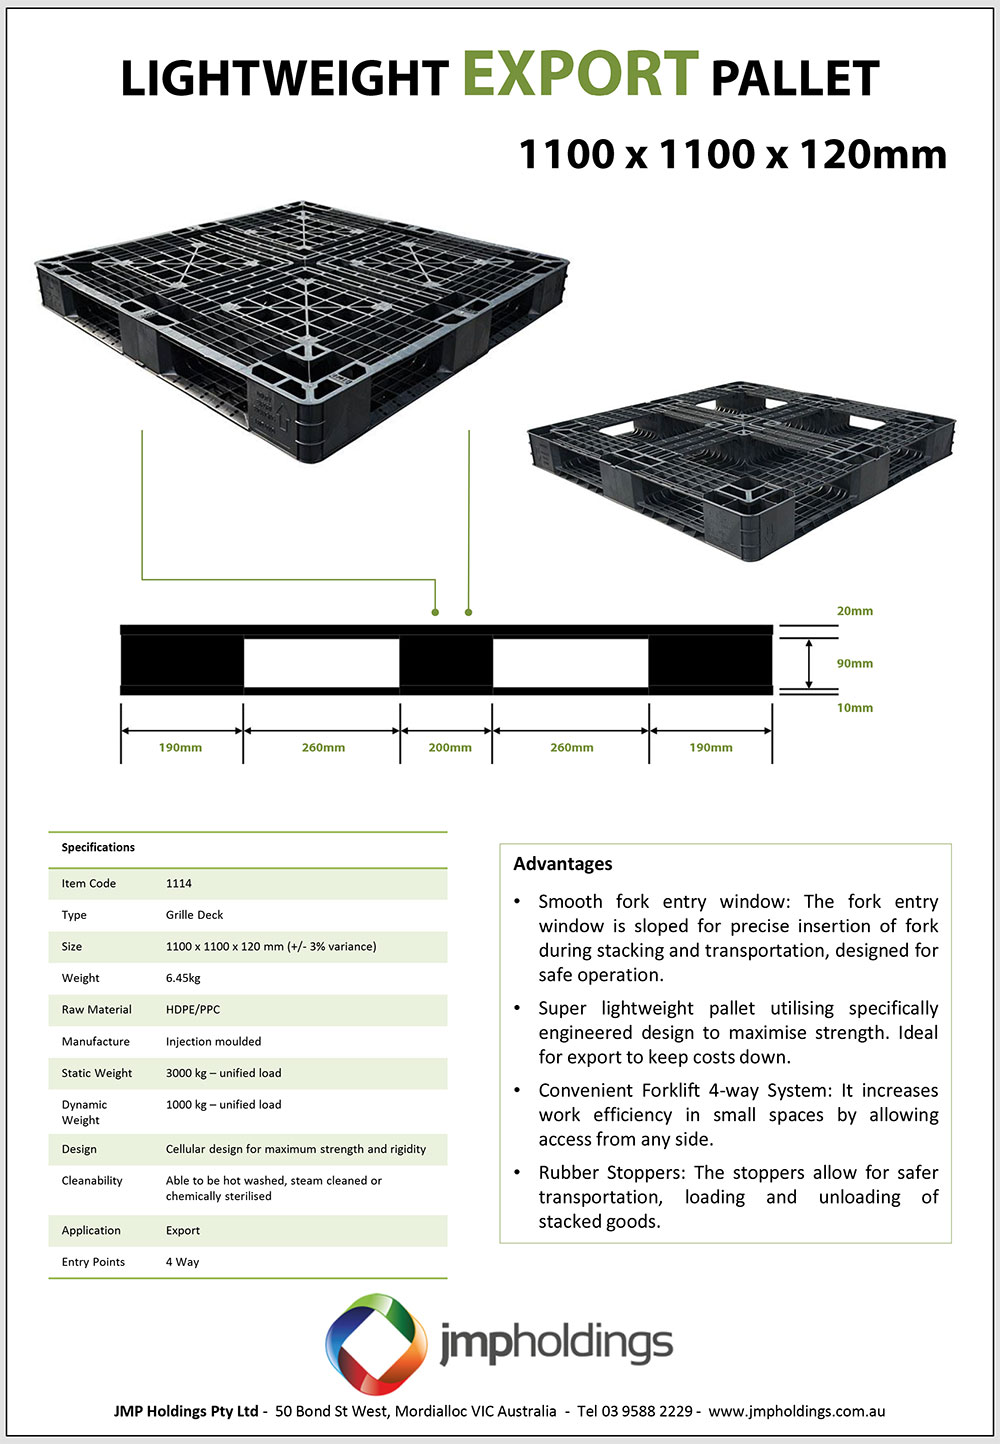 Plastic Pallets For Export And Domestic Use